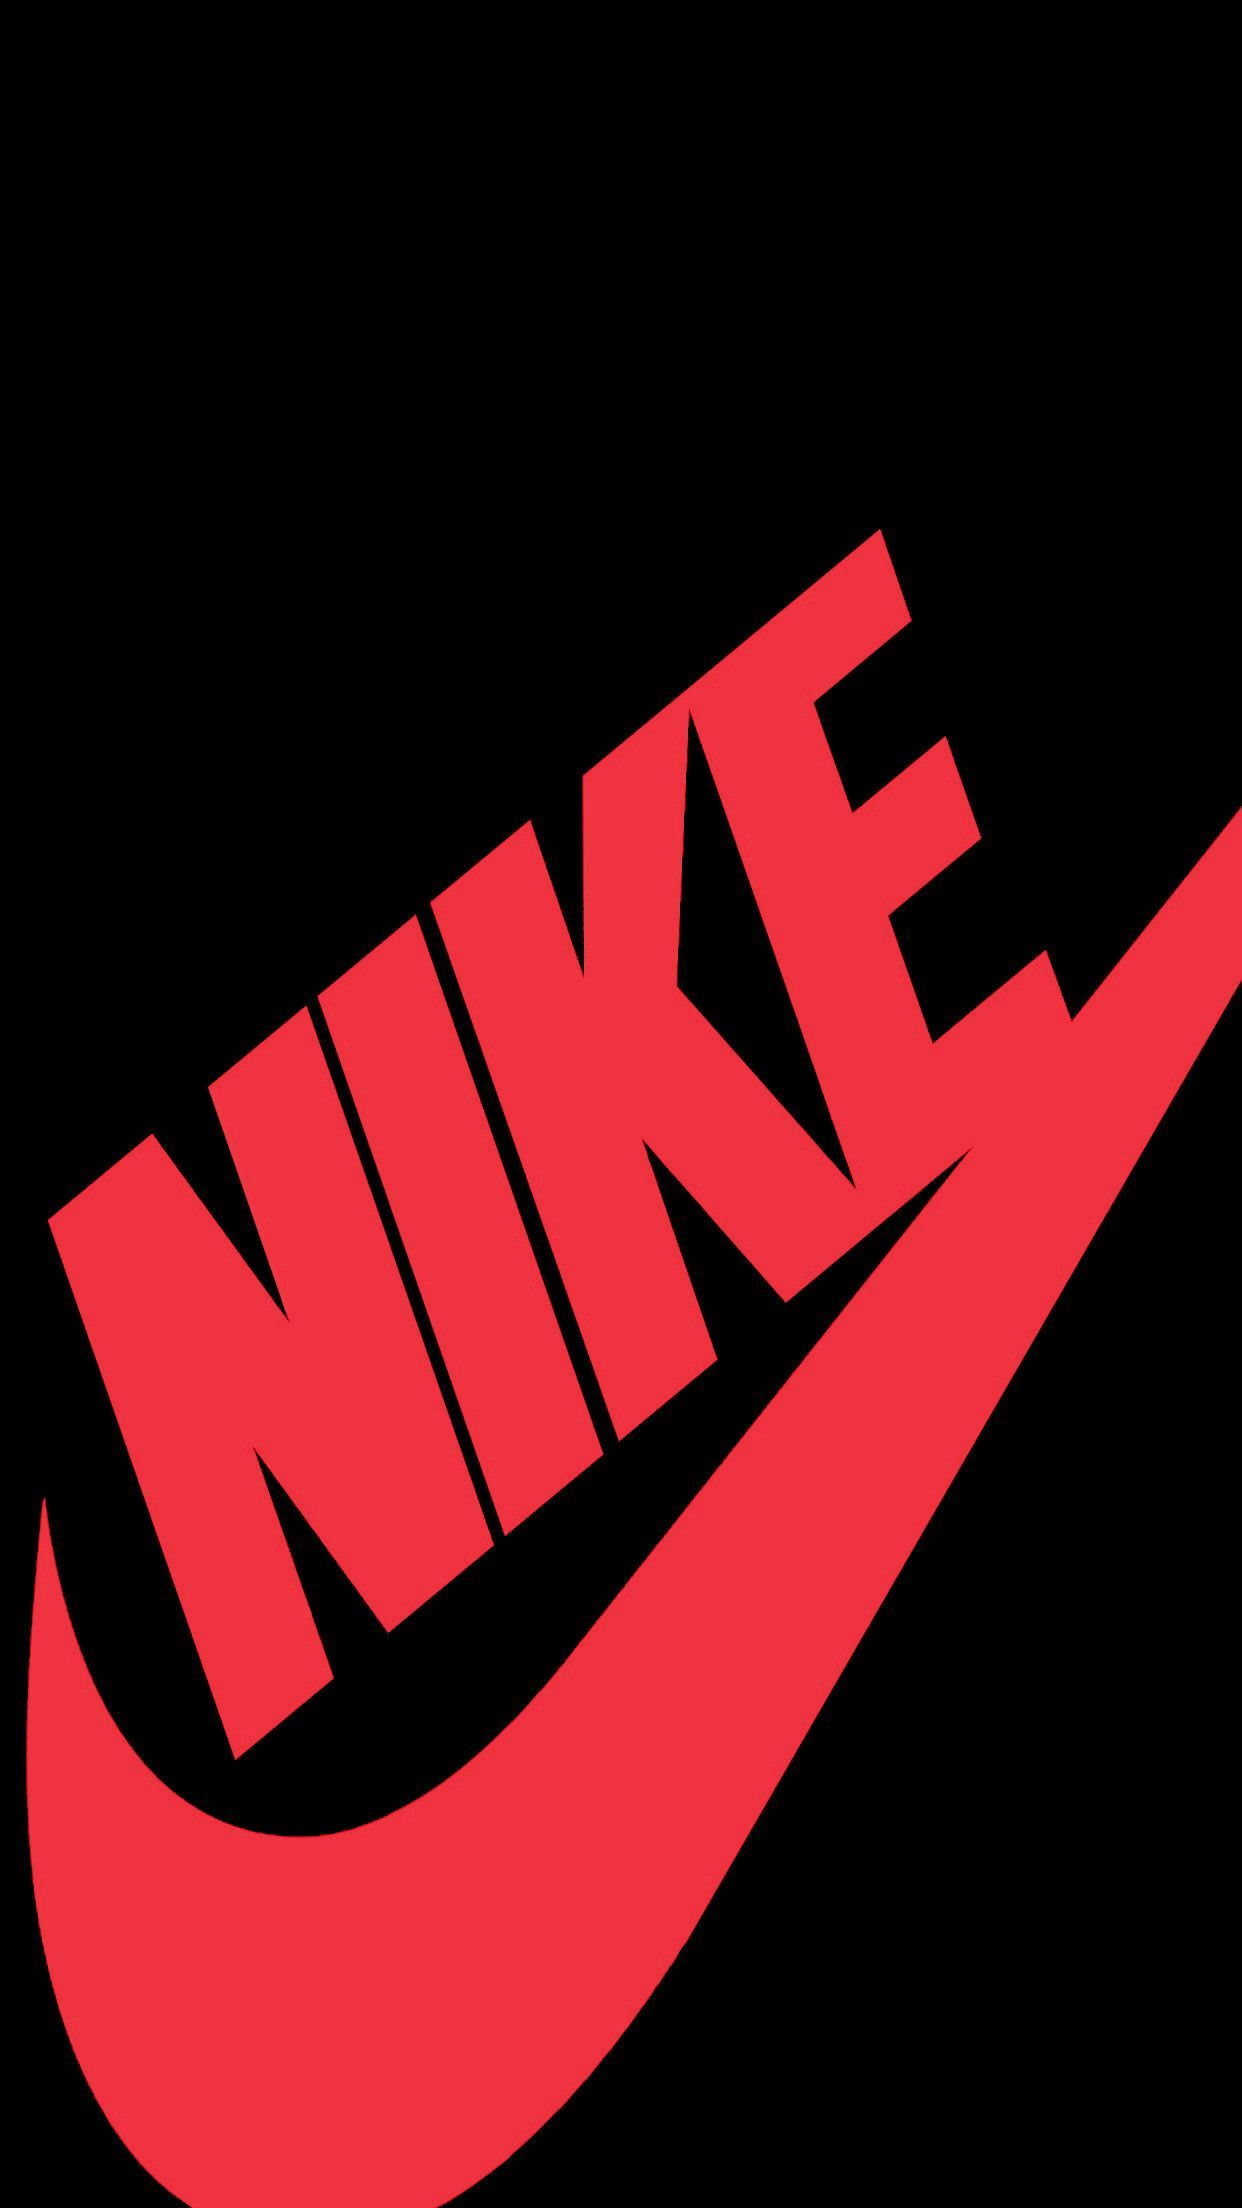 Nike Wallpapers Top Free Nike Backgrounds Wallpaperaccess Nike Wallpaper Nike Wallpaper Iphone Nike Background